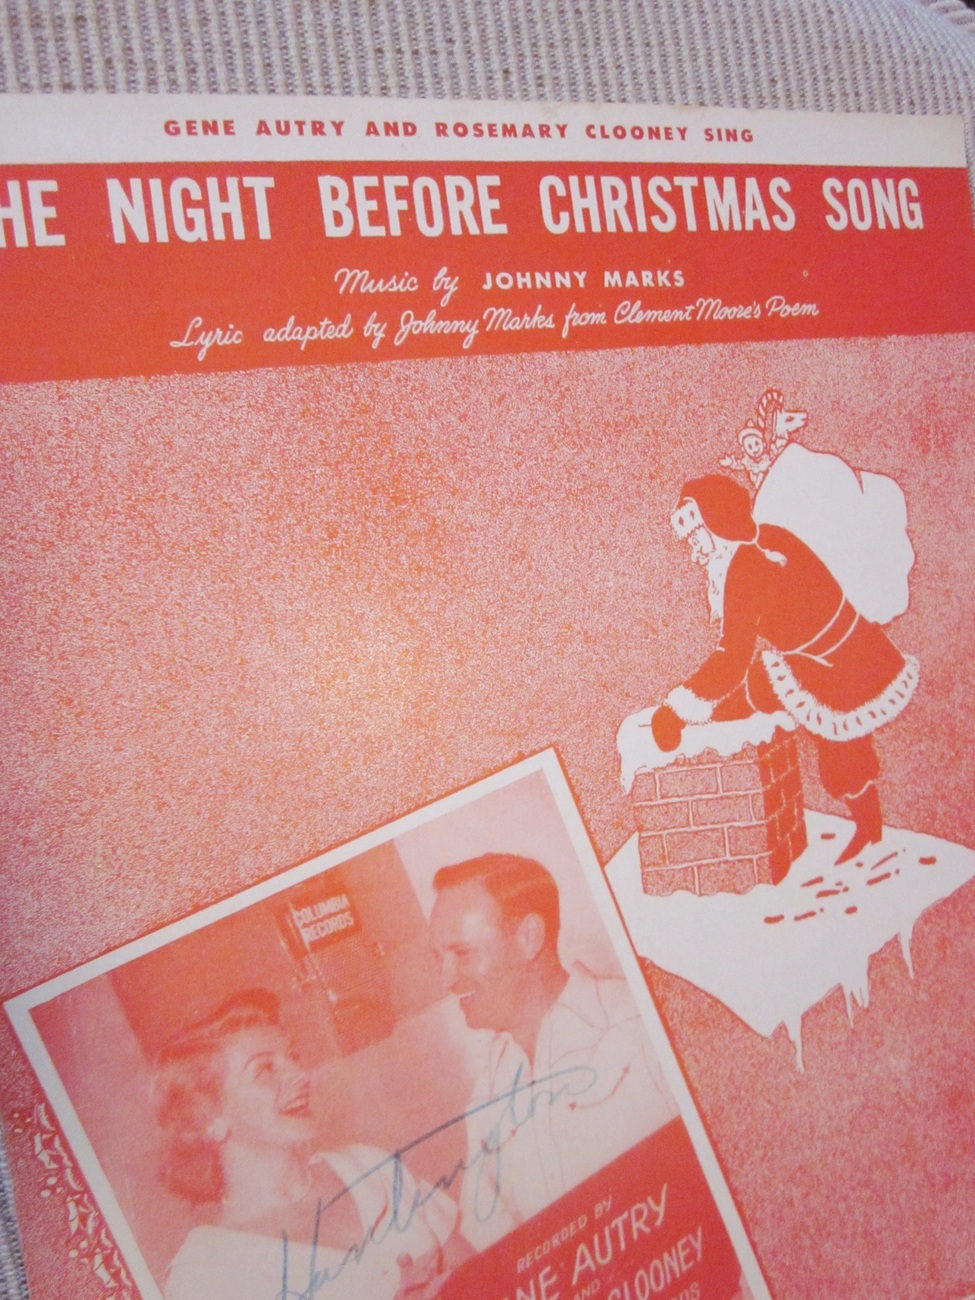 Vintage Sheet Music The Night Before Christmas Song by J. Marks - Autry Clooney